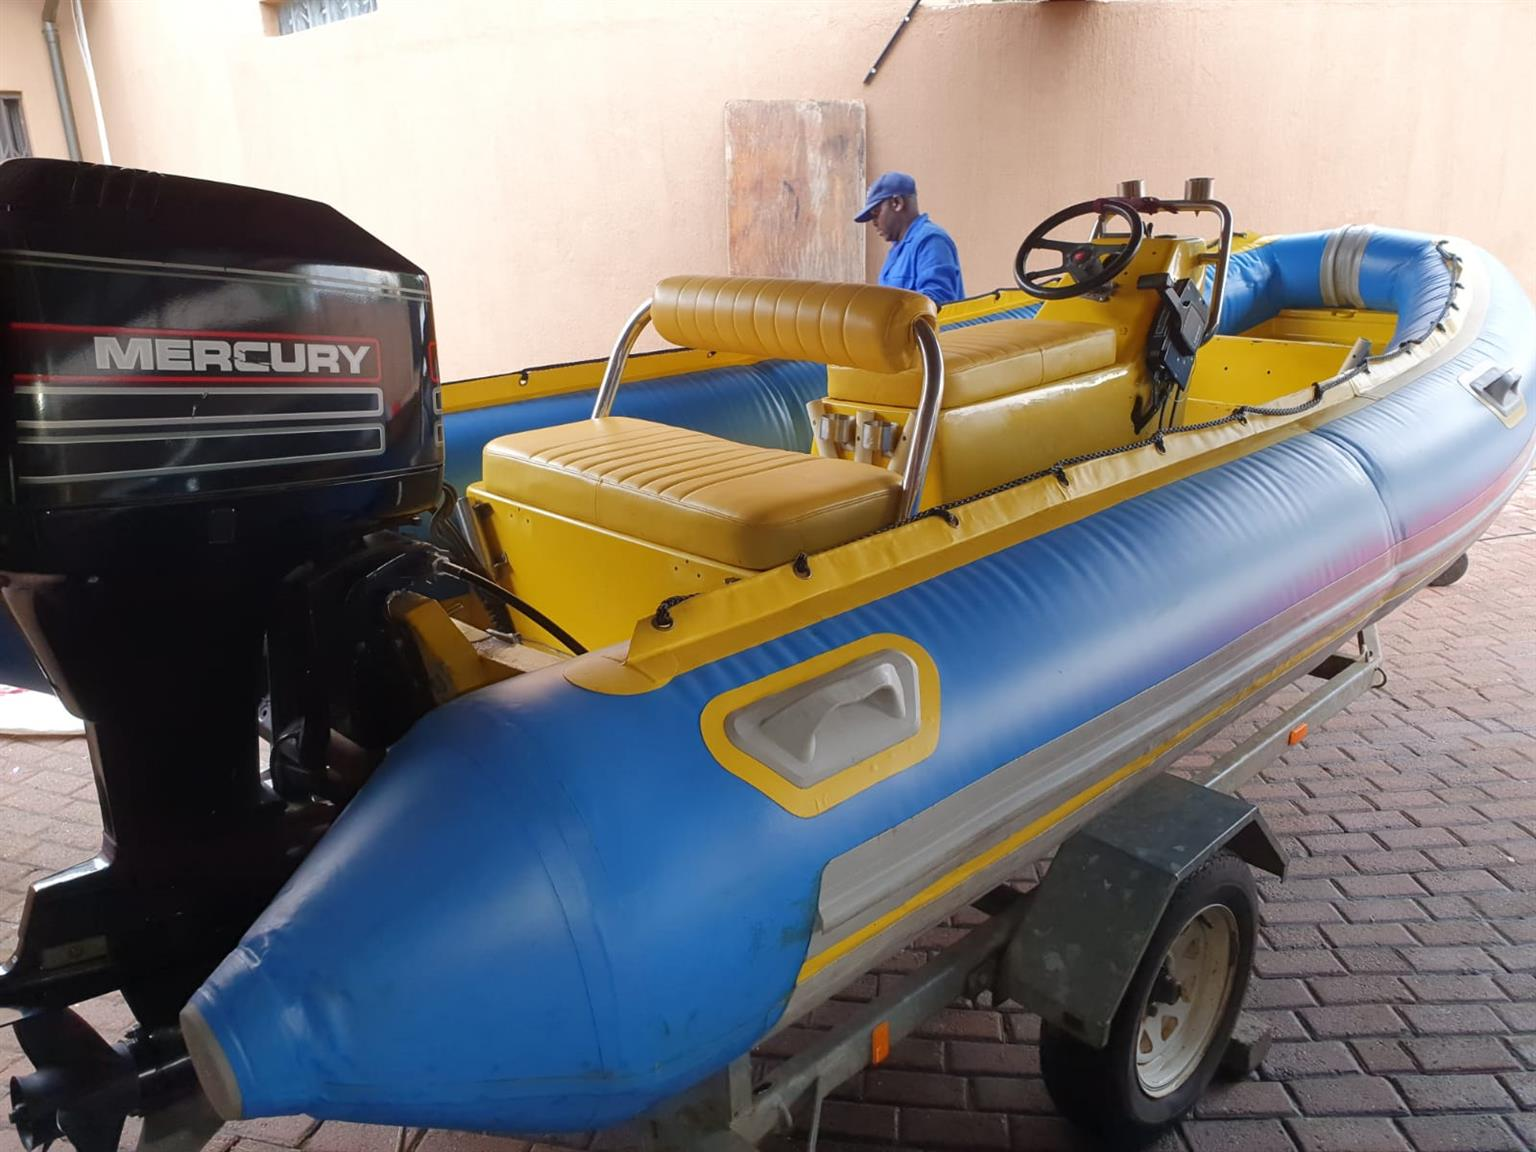 4.6m Gemini Semi-Rigid Boat with 75 Horsepower Mercury Motor